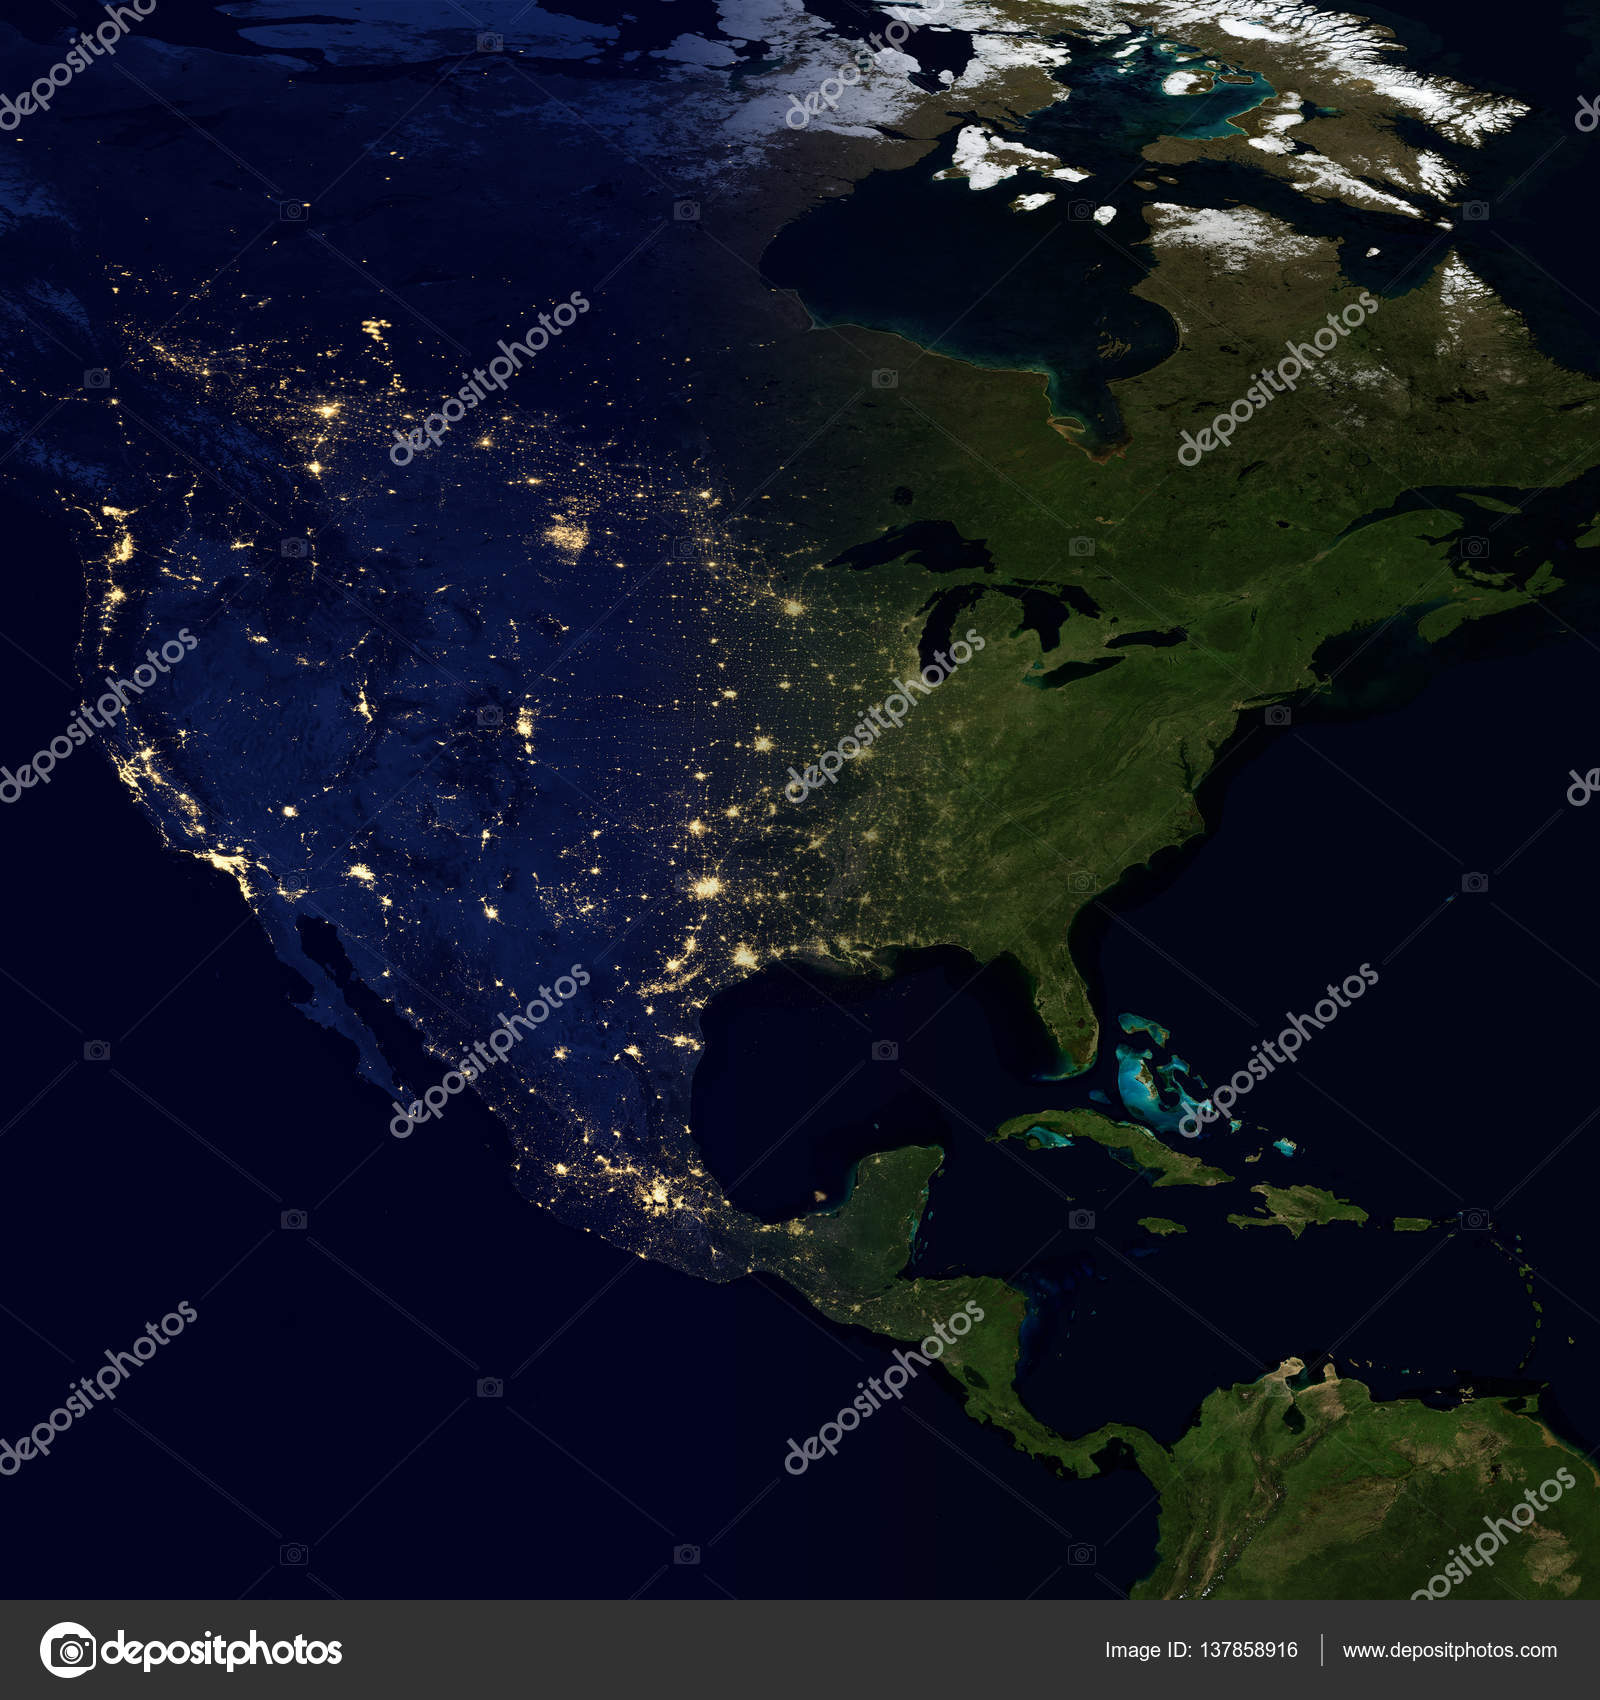 City lights on world map north america stock photo nasaage city lights on world map north america elements of this image are furnished by nasa photo by nasaage gumiabroncs Choice Image